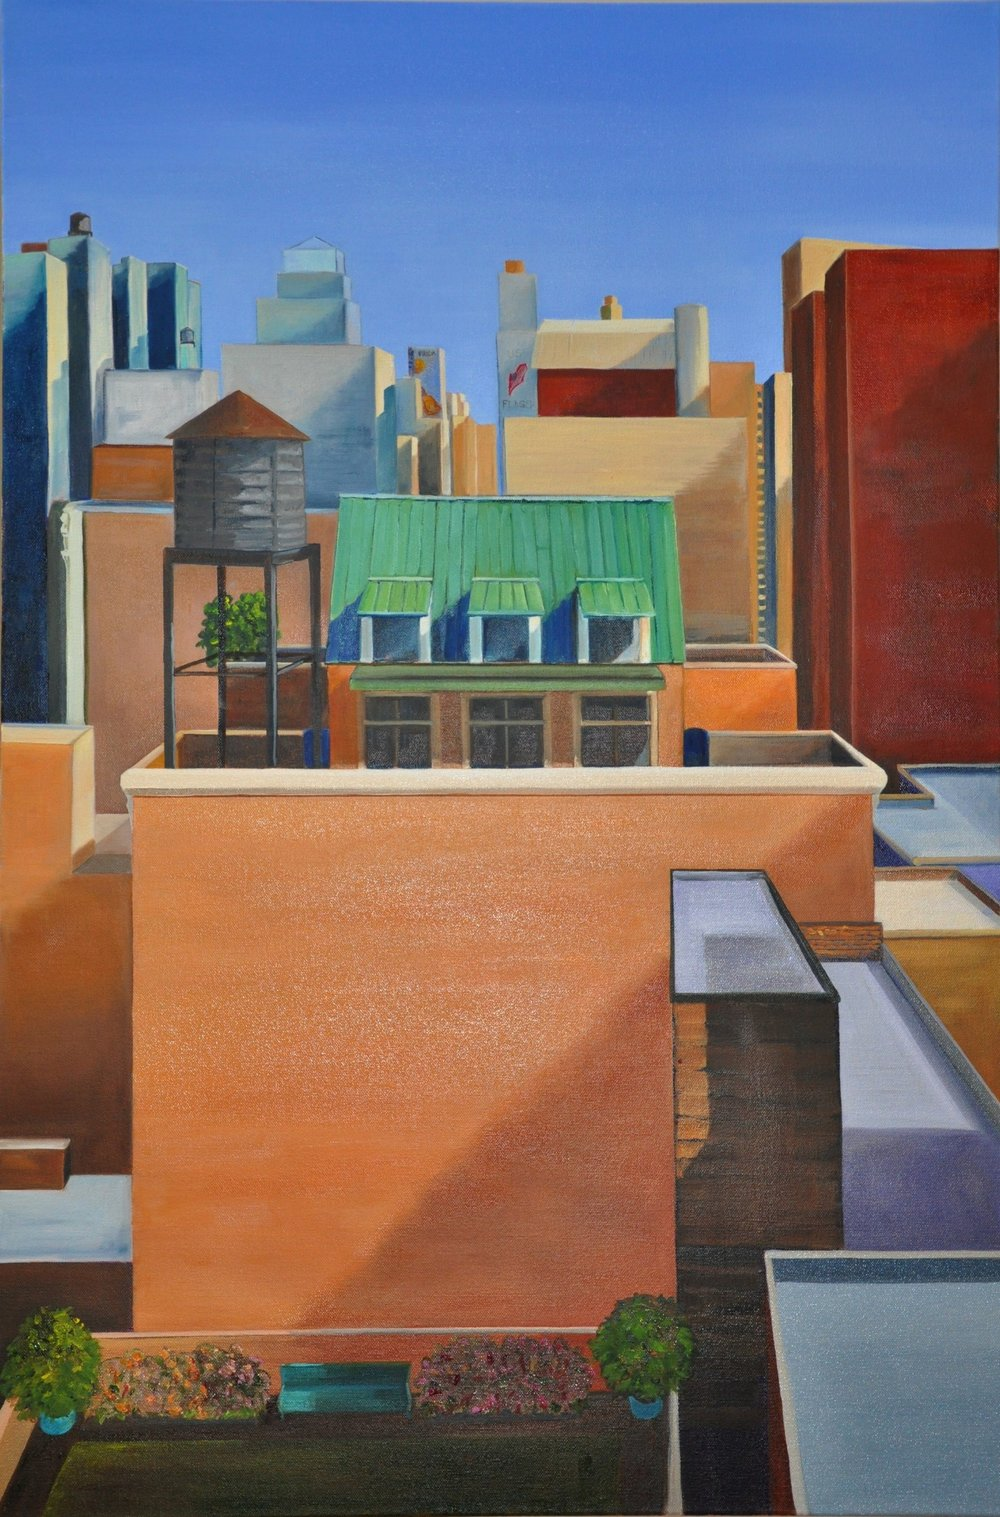 Rooftops  2018 For pricing inquire with Artist  24 x 36 x 2 inches  Oil on Gallery wrapped canvas- clean edges, ready to hang as-is!